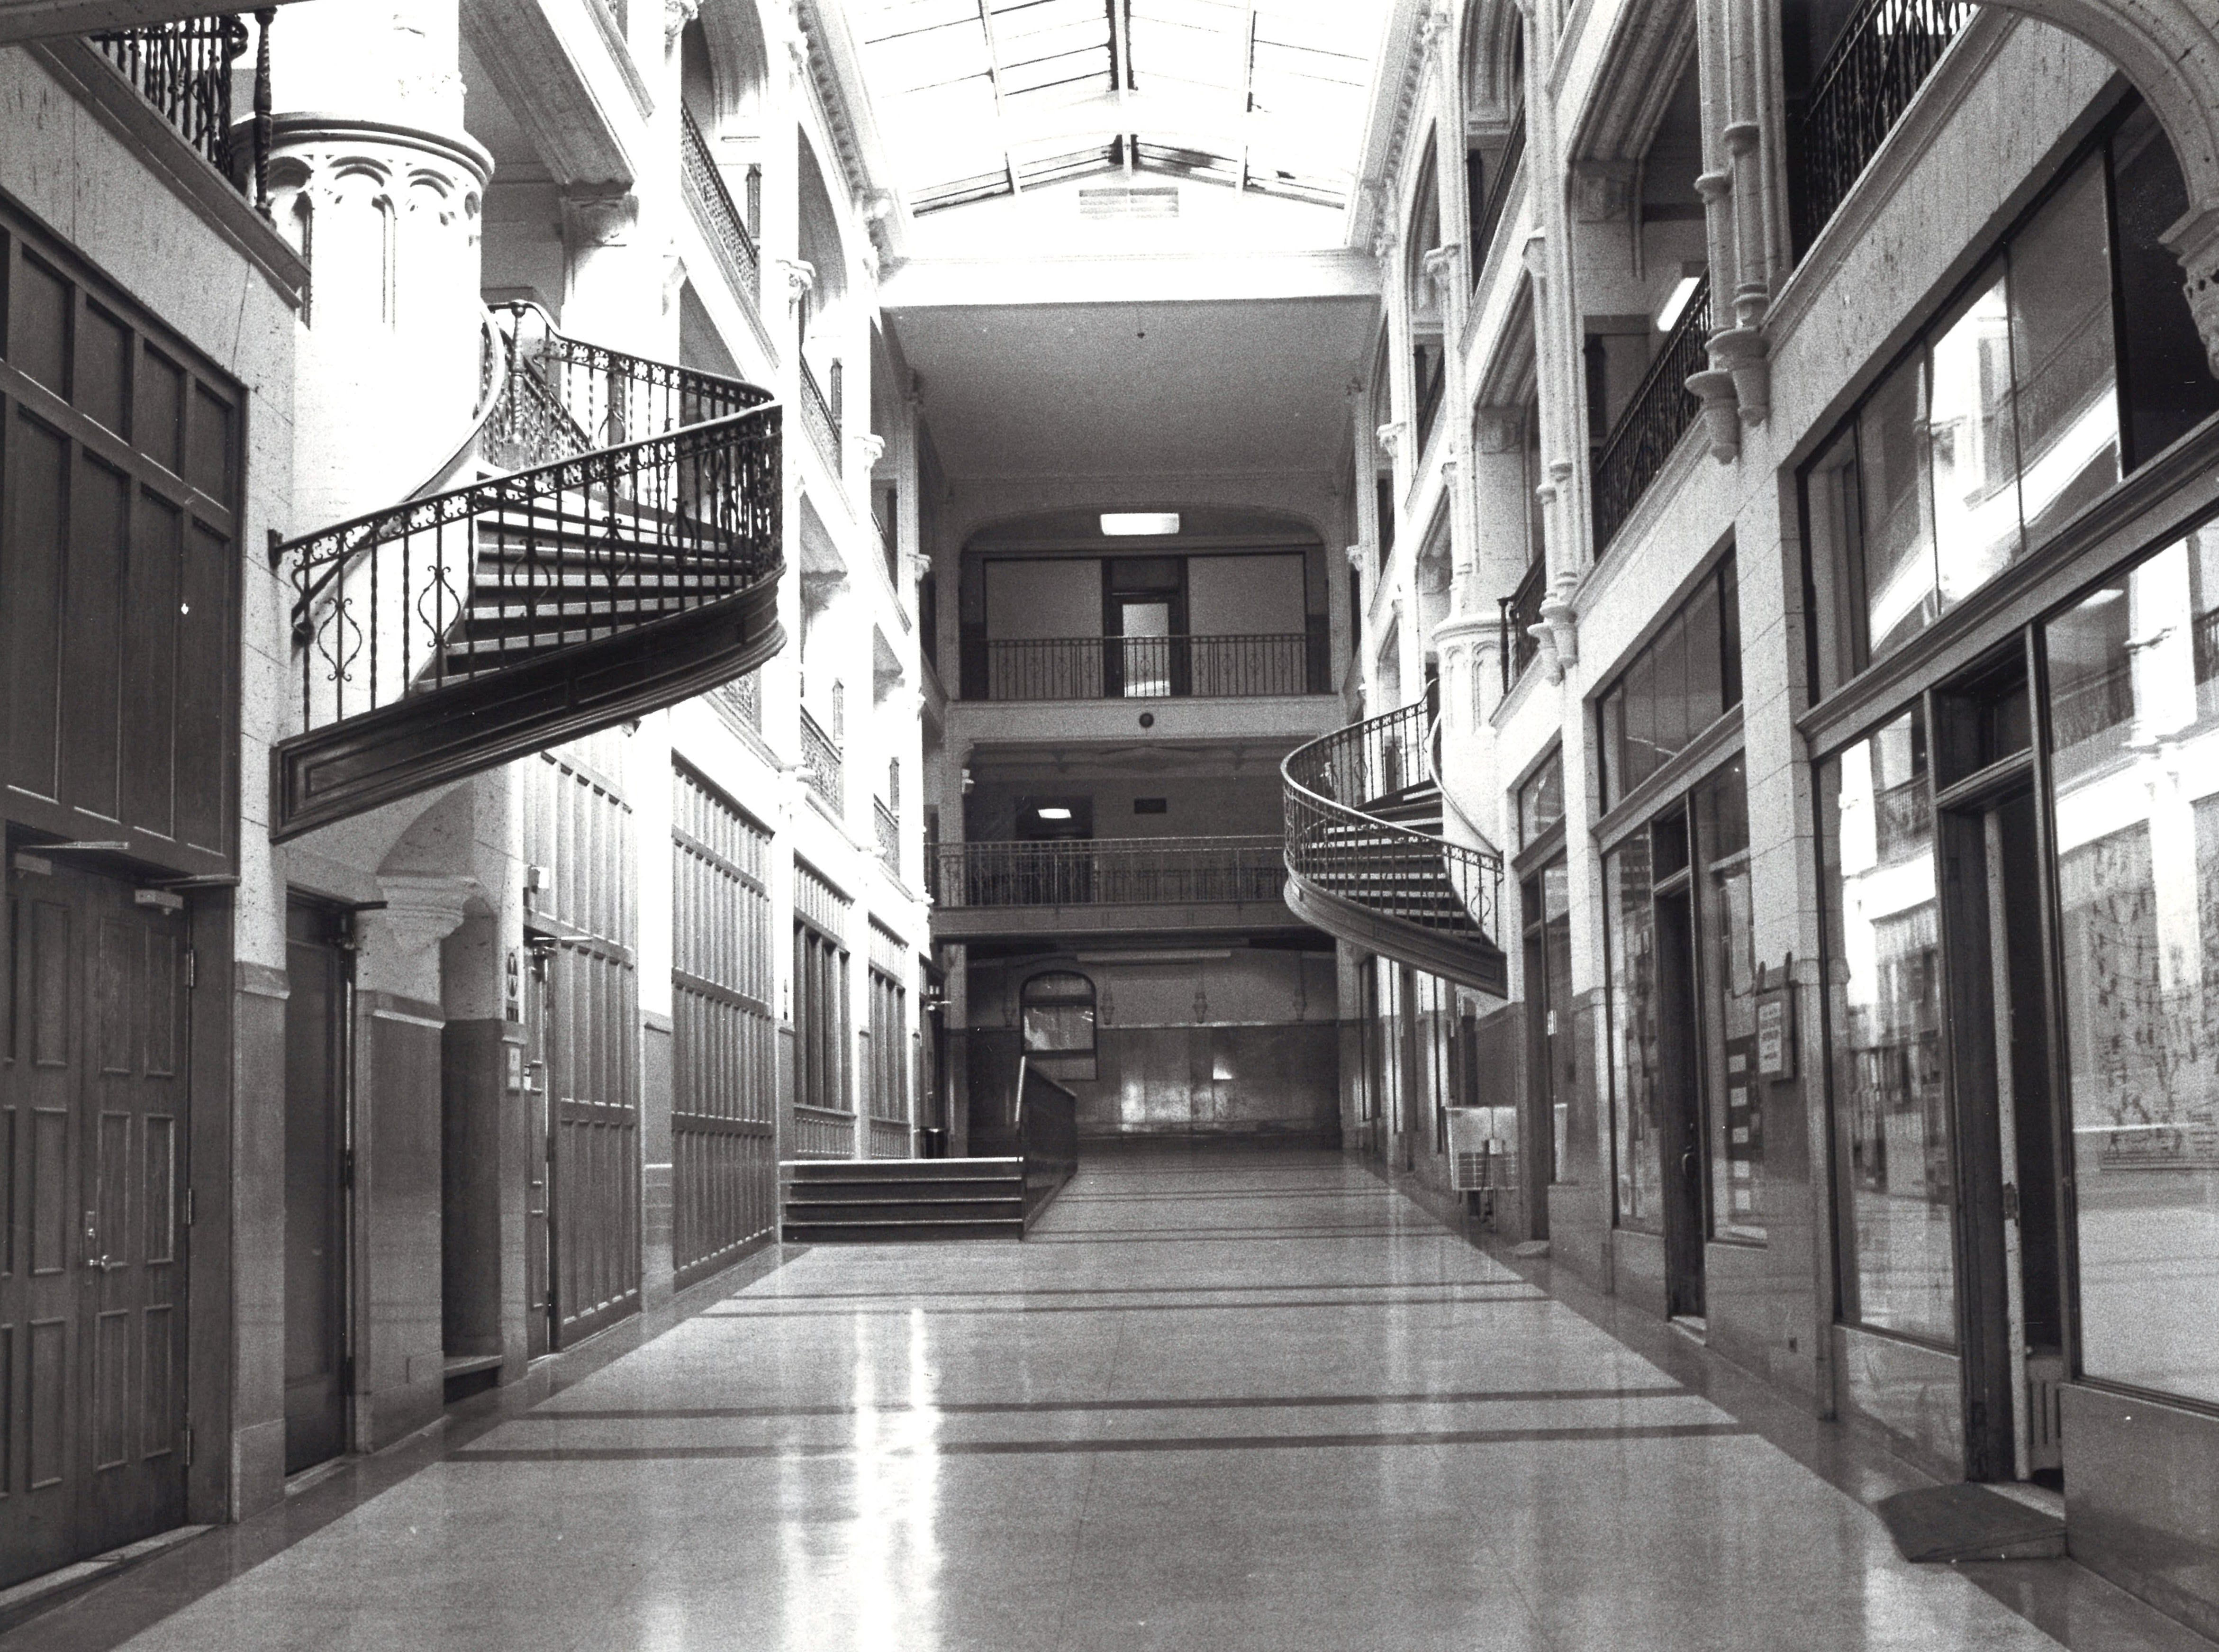 Interior of the Federal Building in 1985. At the time talk of renovating the building had begun.